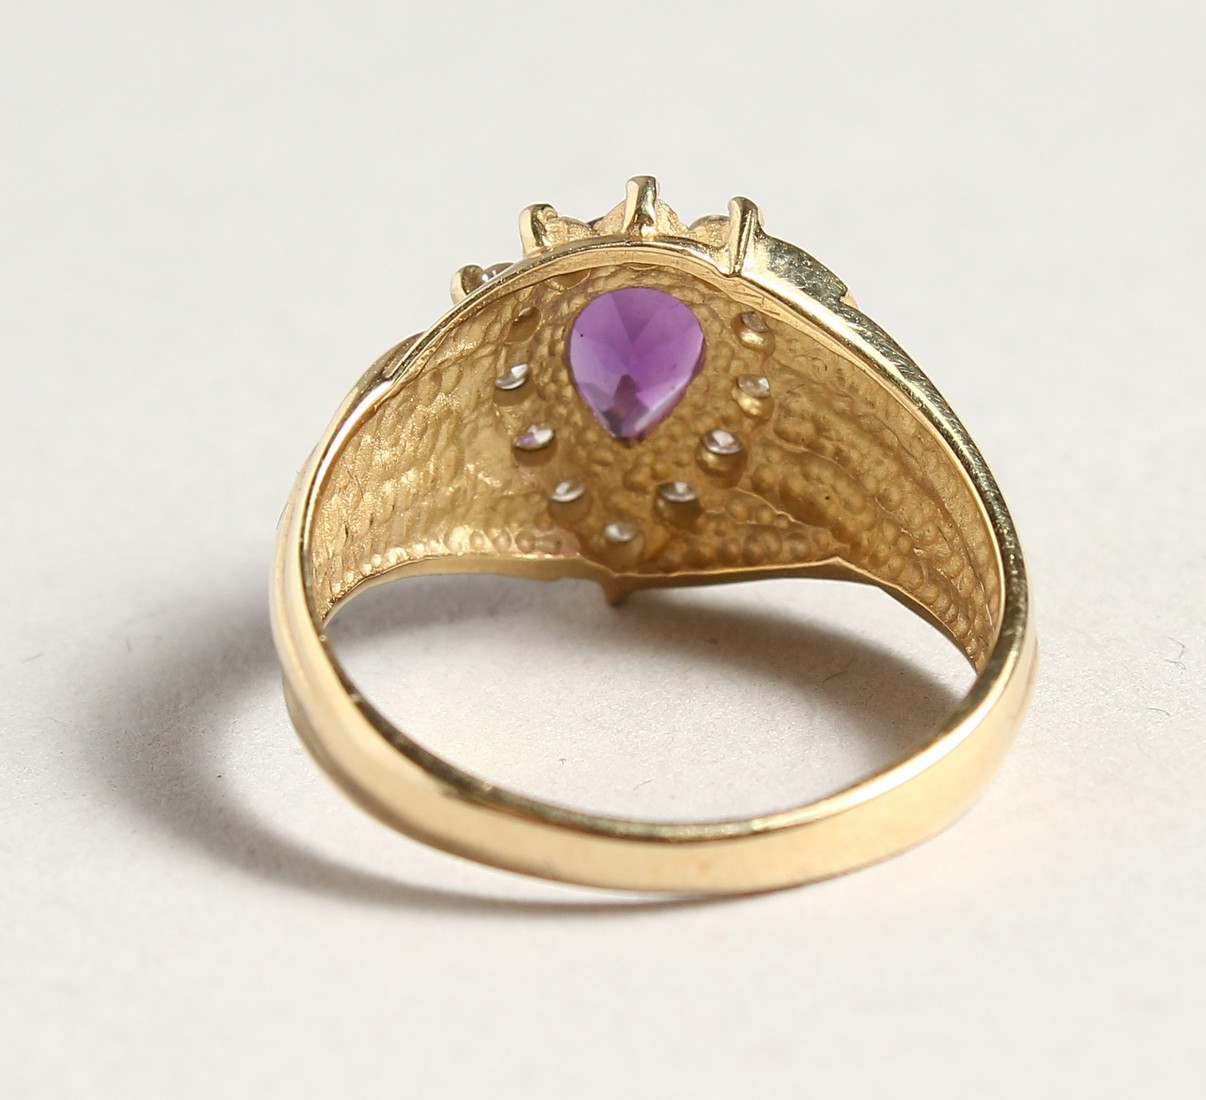 A 14CT GOLD, AMETHYST AND DIAMOND TEAR DROP RING - Image 3 of 4